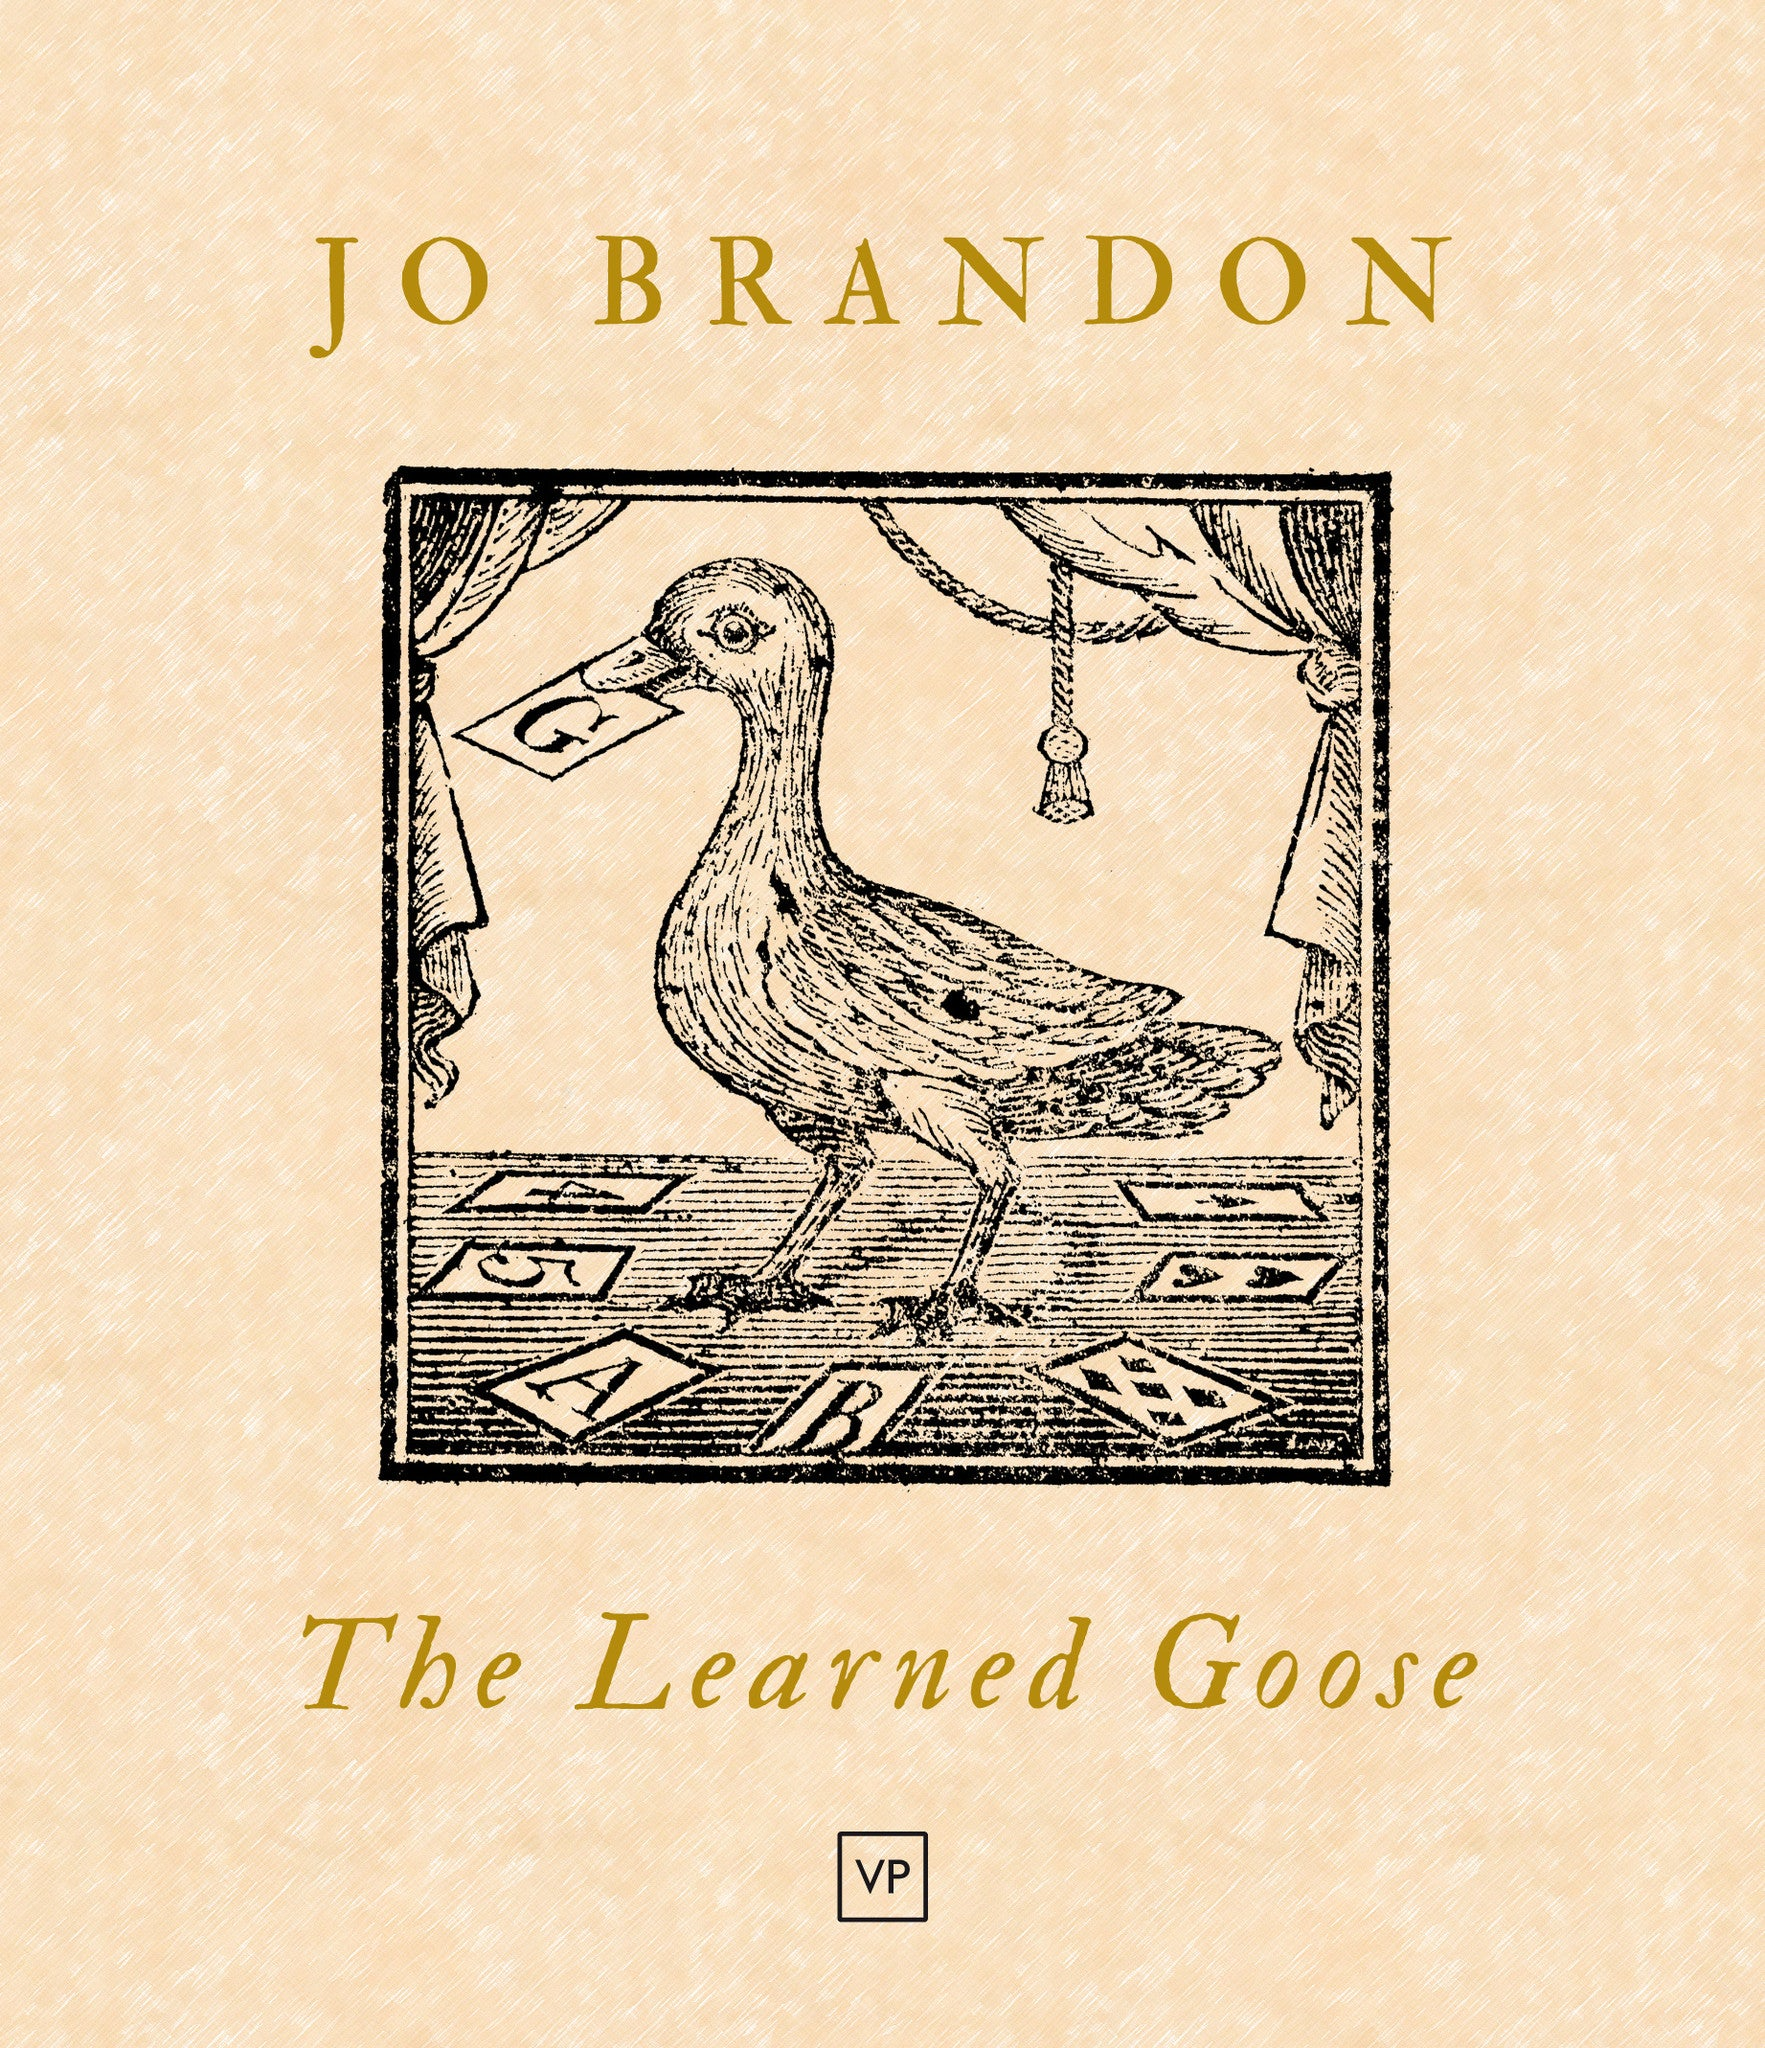 The Learned Goose